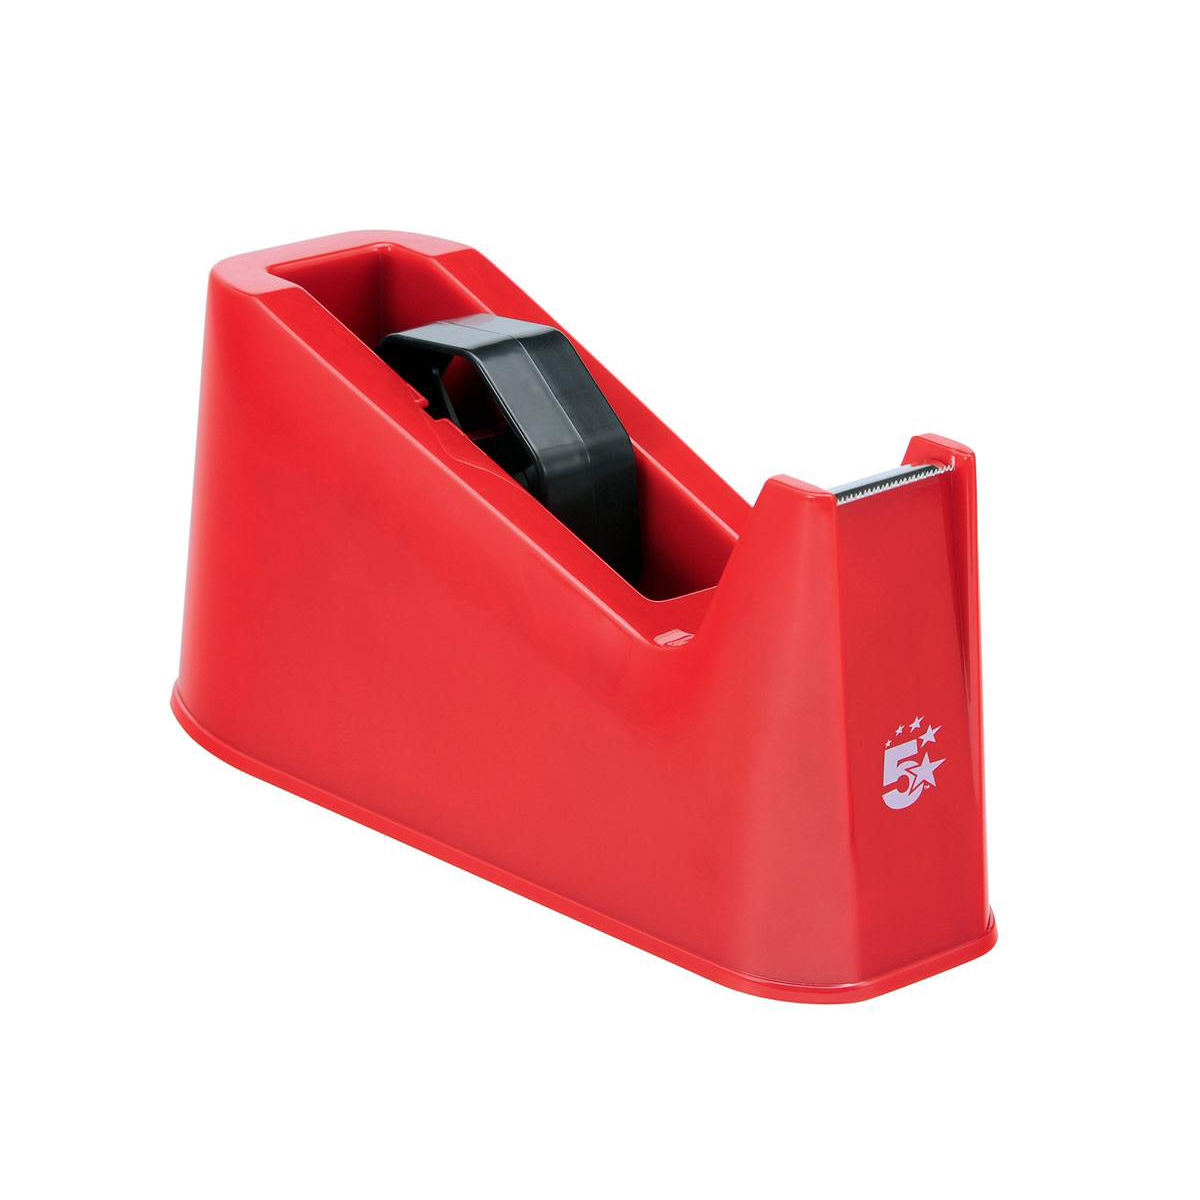 5 Star Tape Dispenser Desk Weighted Non-slip Red Code 920152